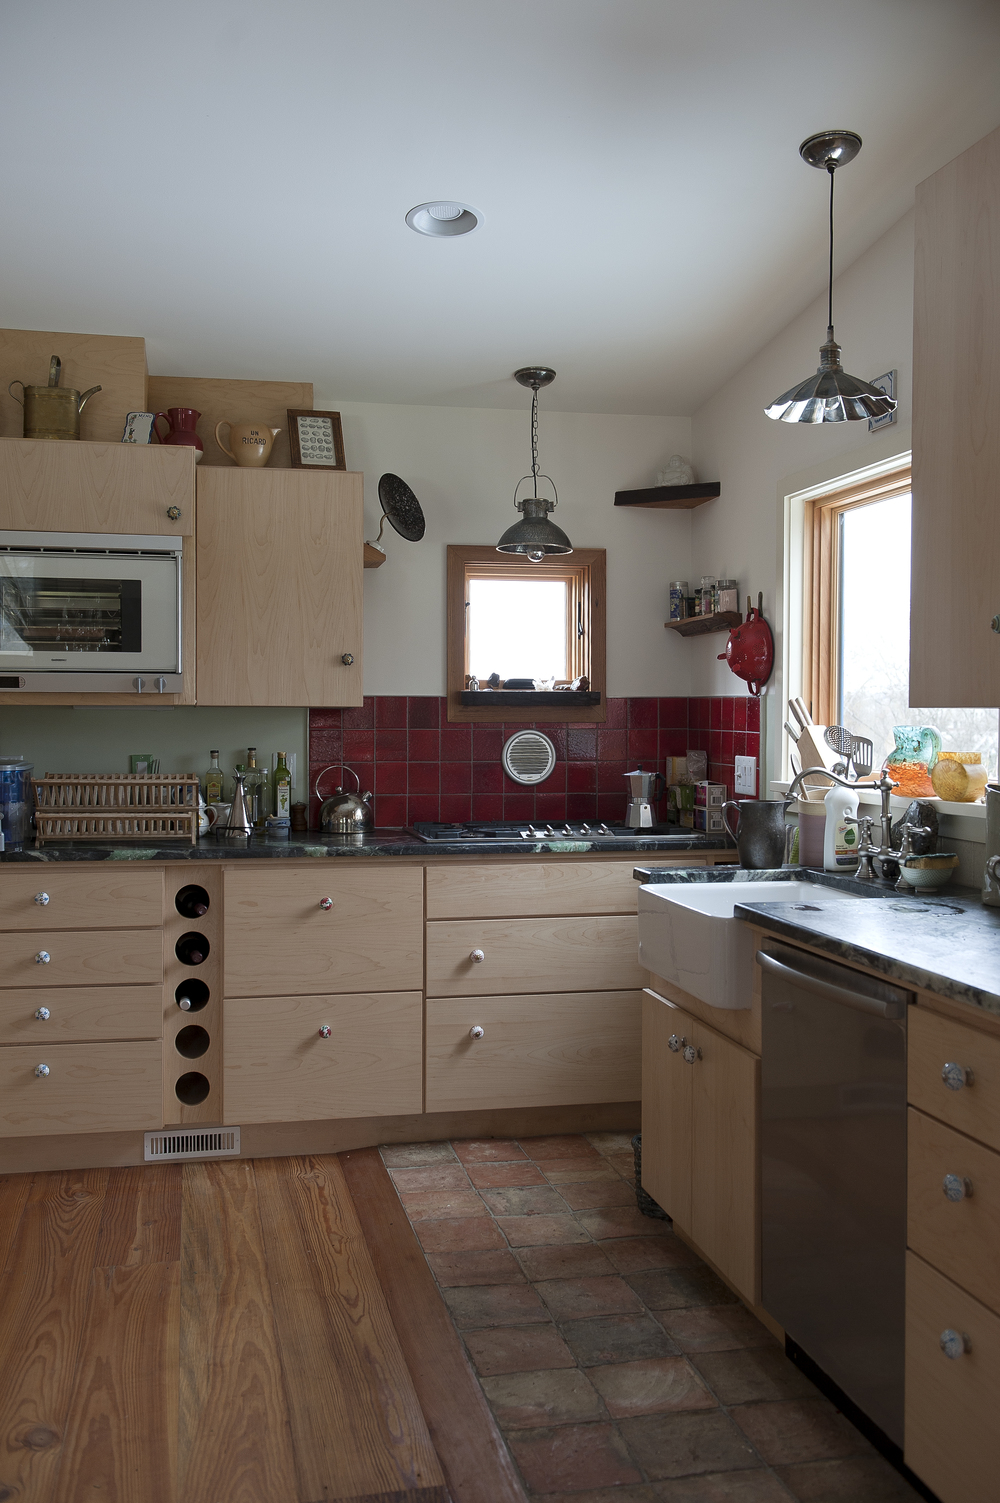 kitchen-close-up.jpg